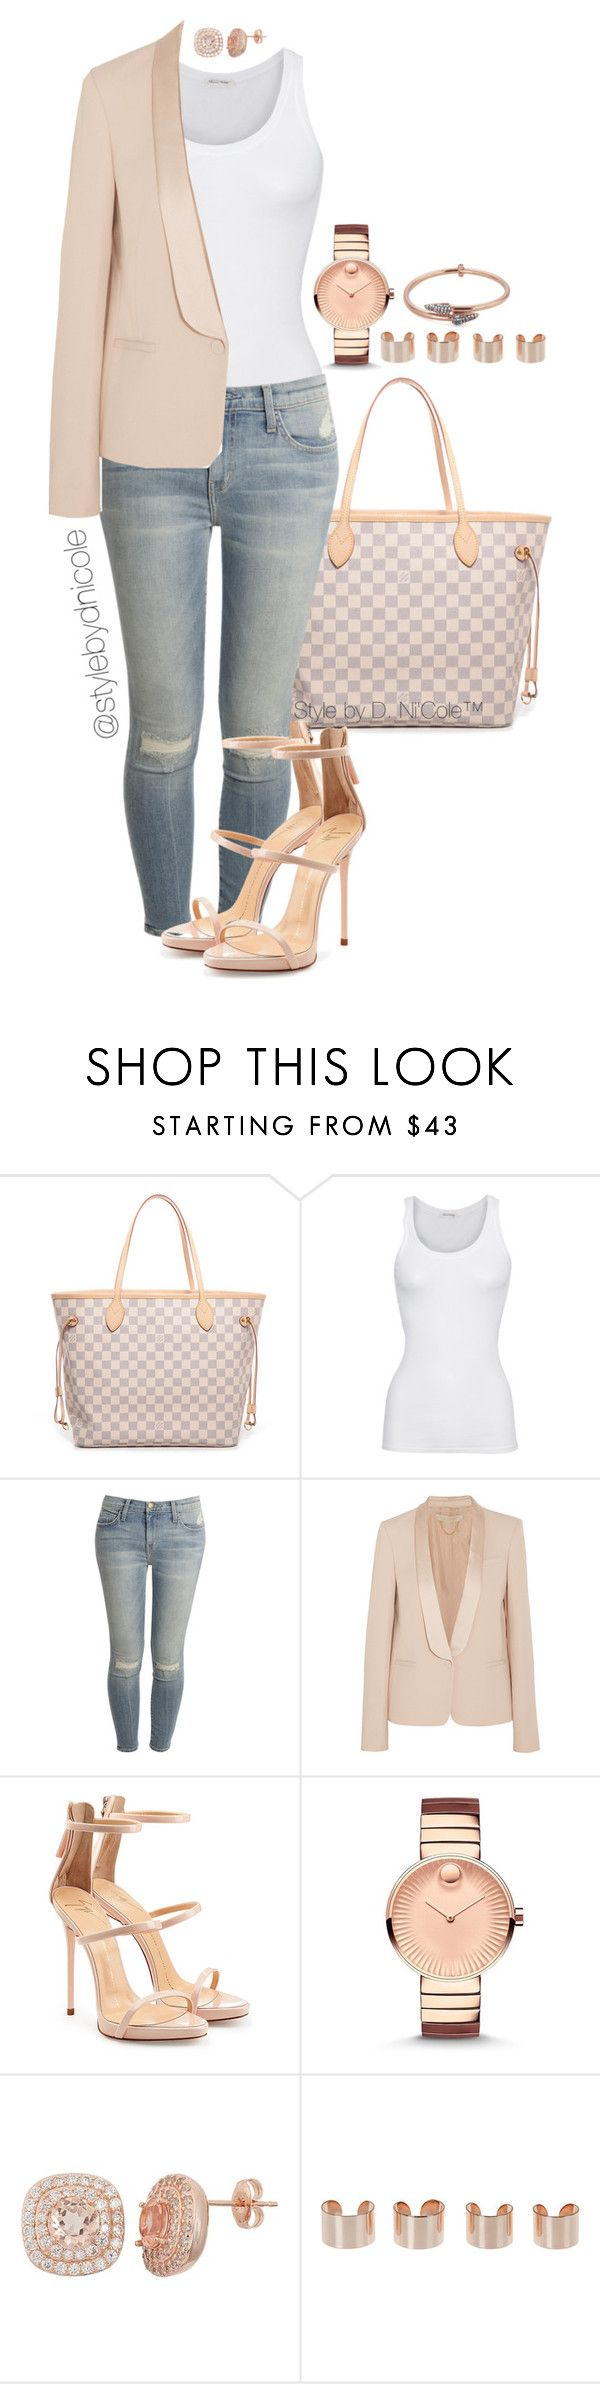 """""""Untitled #3193"""" by stylebydnicole ❤ liked on Polyvore featuring Louis Vuitton, American Vintage, Current/Elliott, Vanessa Bruno, Giuseppe Zanotti, Movado, Maison Margiela, Katie Rowland, women's clothing and women"""